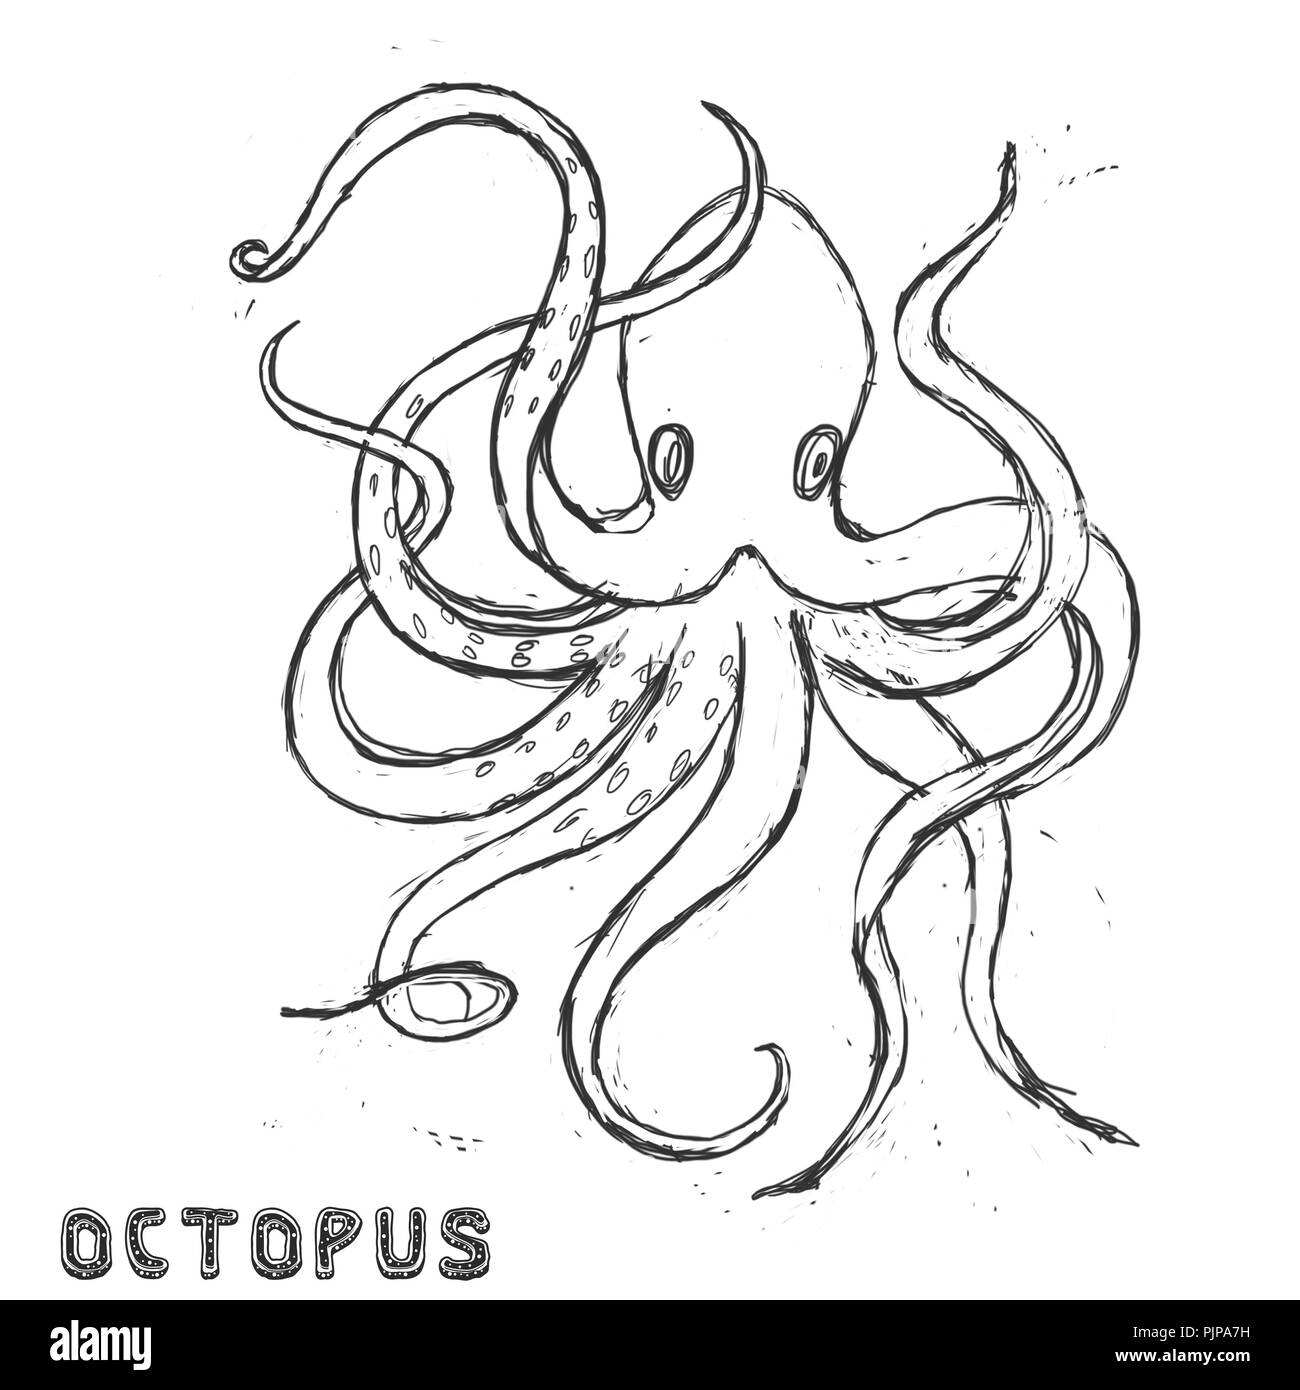 Sea beast character  illustration drawing geometric cute animal polar ocean face octopus eyes funny sea life color white and black Antarctica deep blu - Stock Image